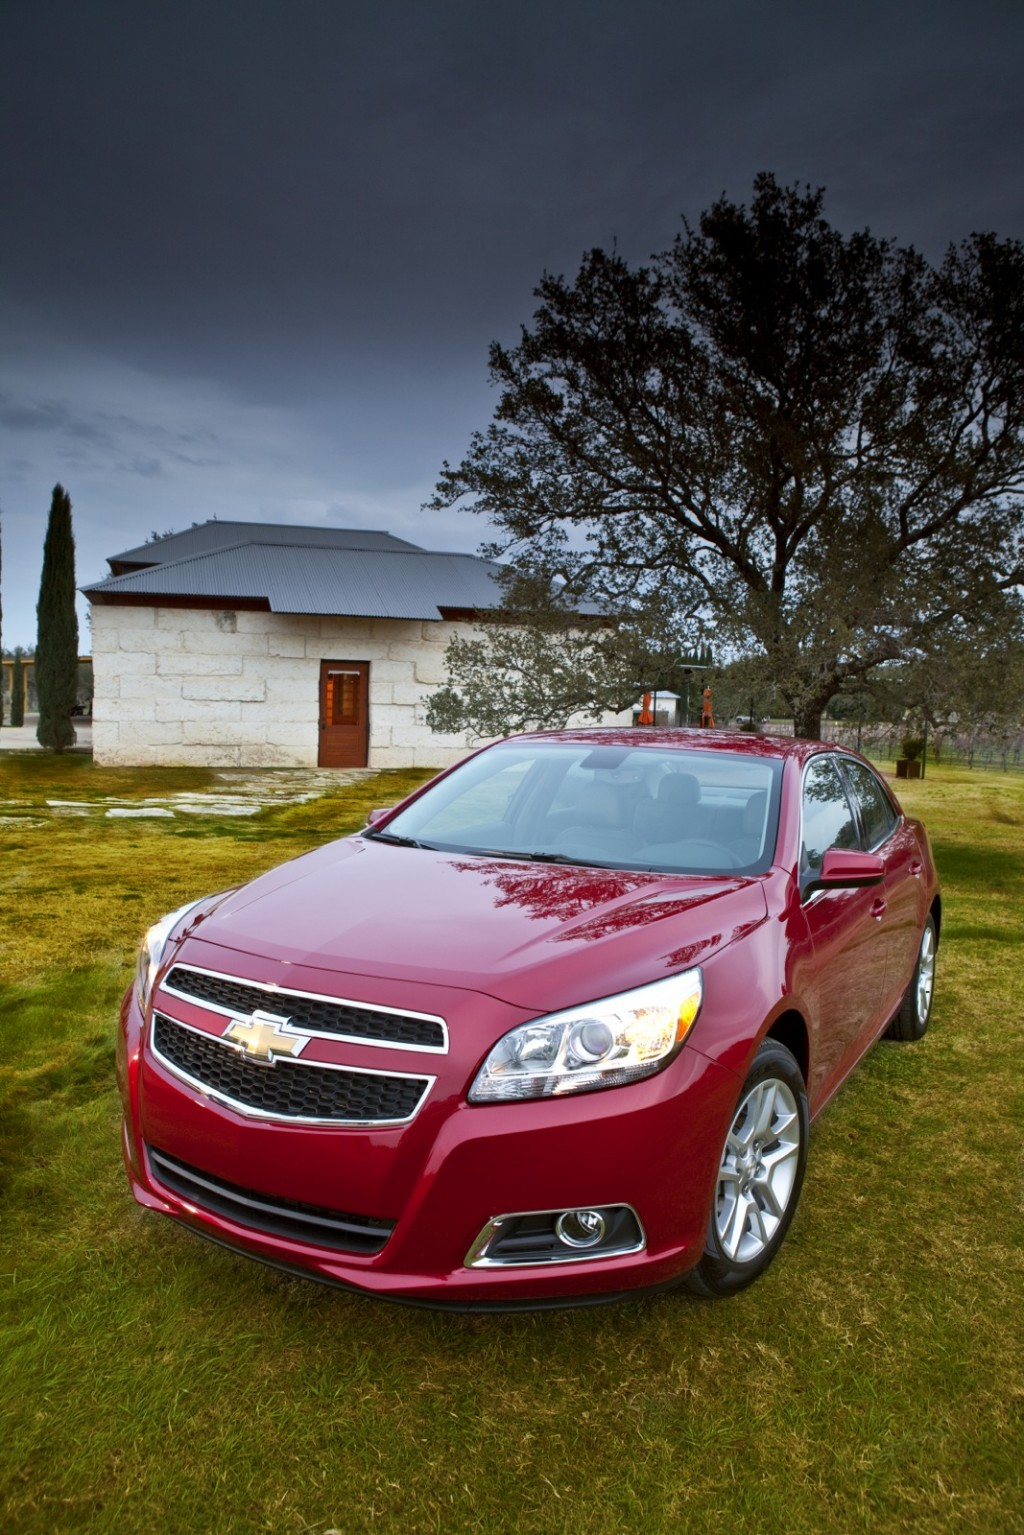 2013 chevrolet malibu eco 2012 hyundai azera earn top safety ratings. Black Bedroom Furniture Sets. Home Design Ideas